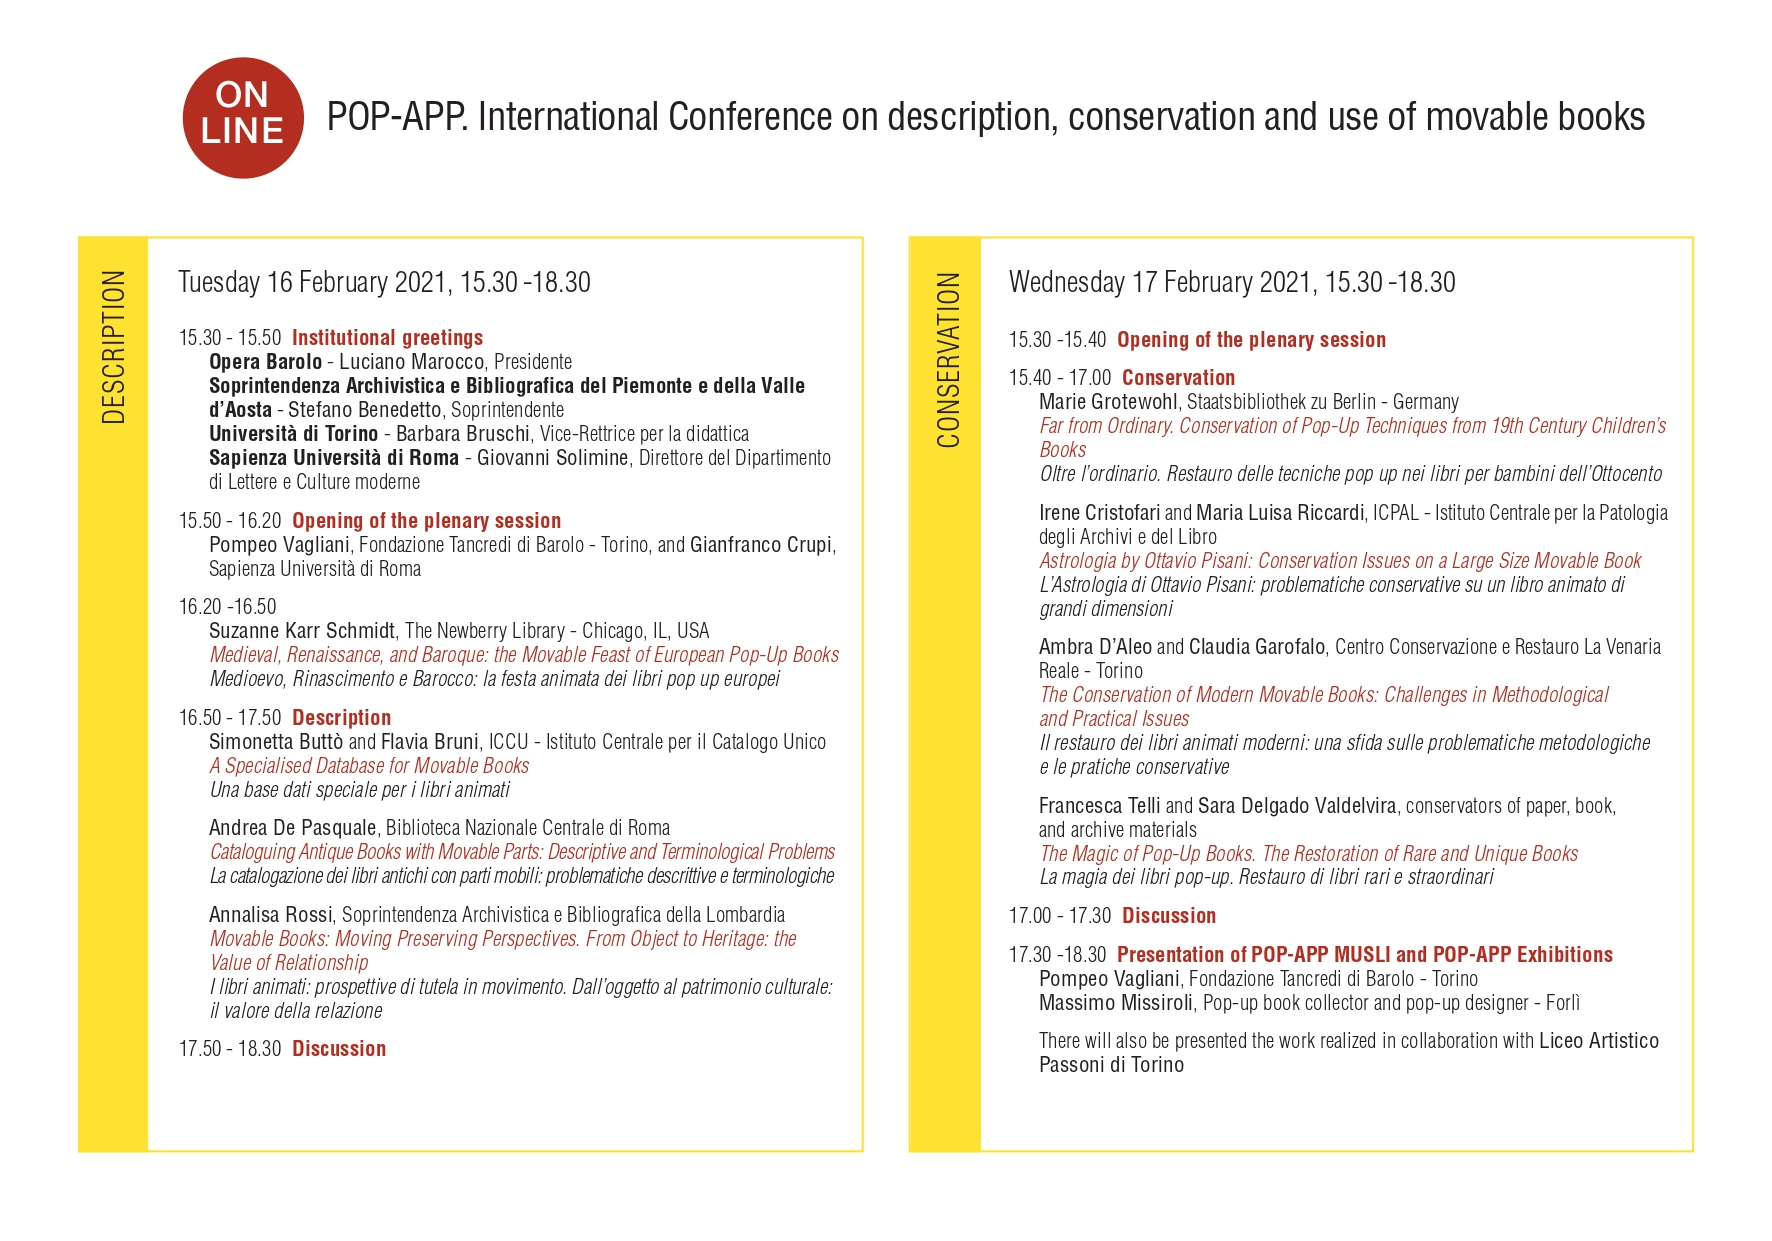 POP-APP. International Conference on description, conservation and use of movable books